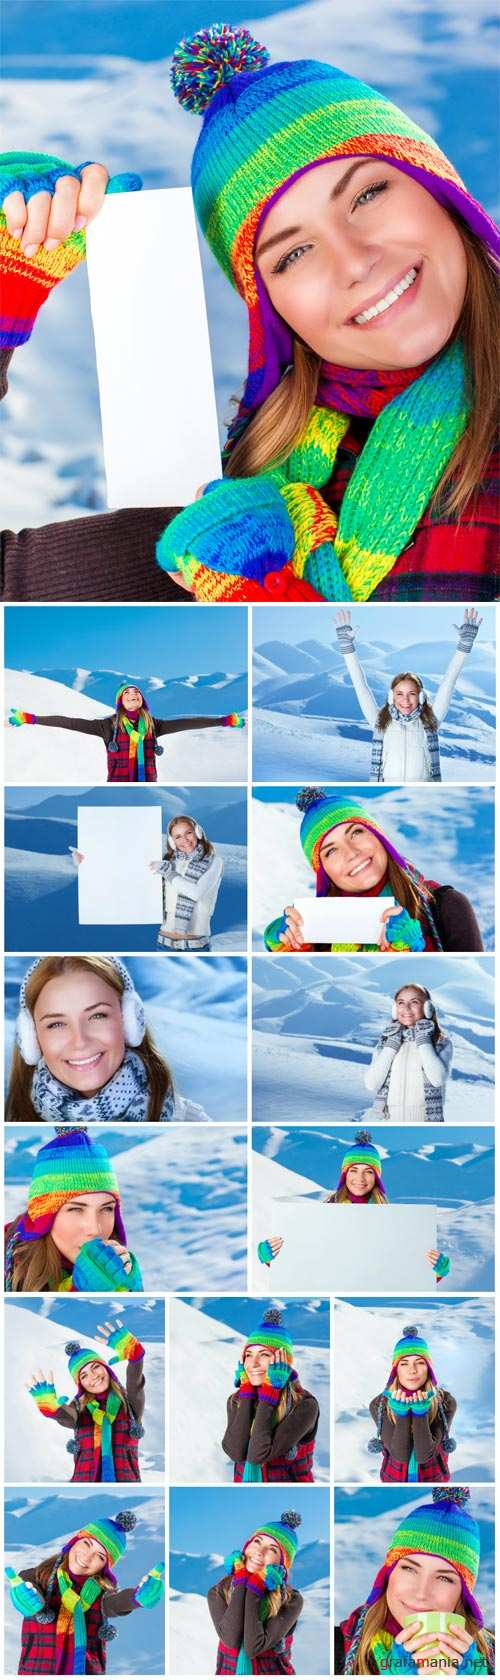 Girl enjoying snowy winter weather, christmas holidays in the mountains - Stock photo